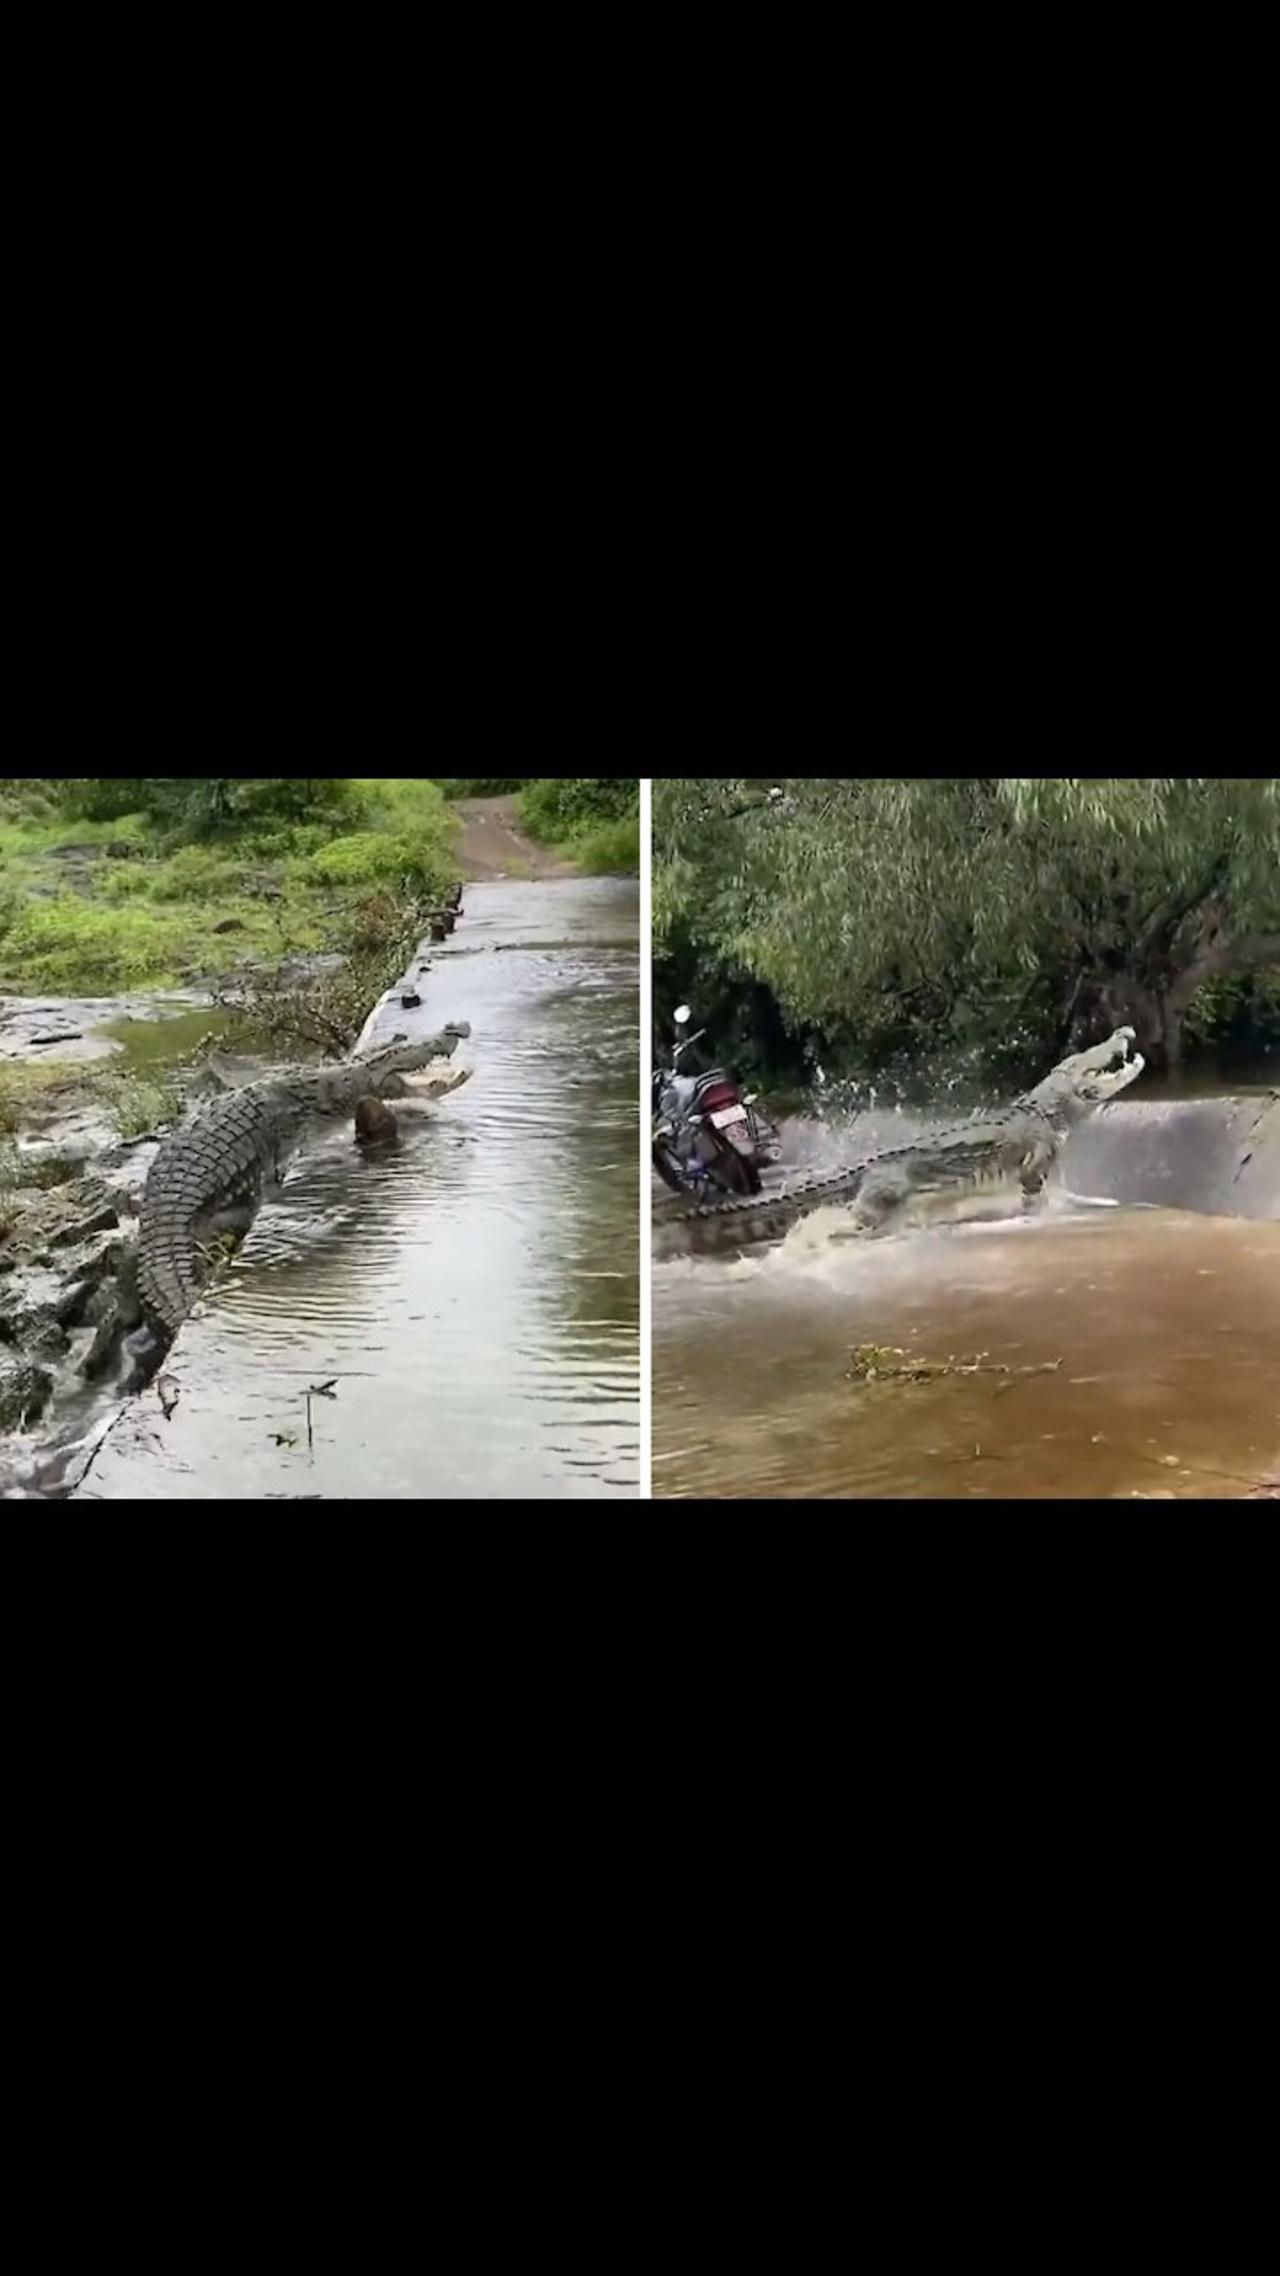 Enormous crocodile in India climbs up river waterfall